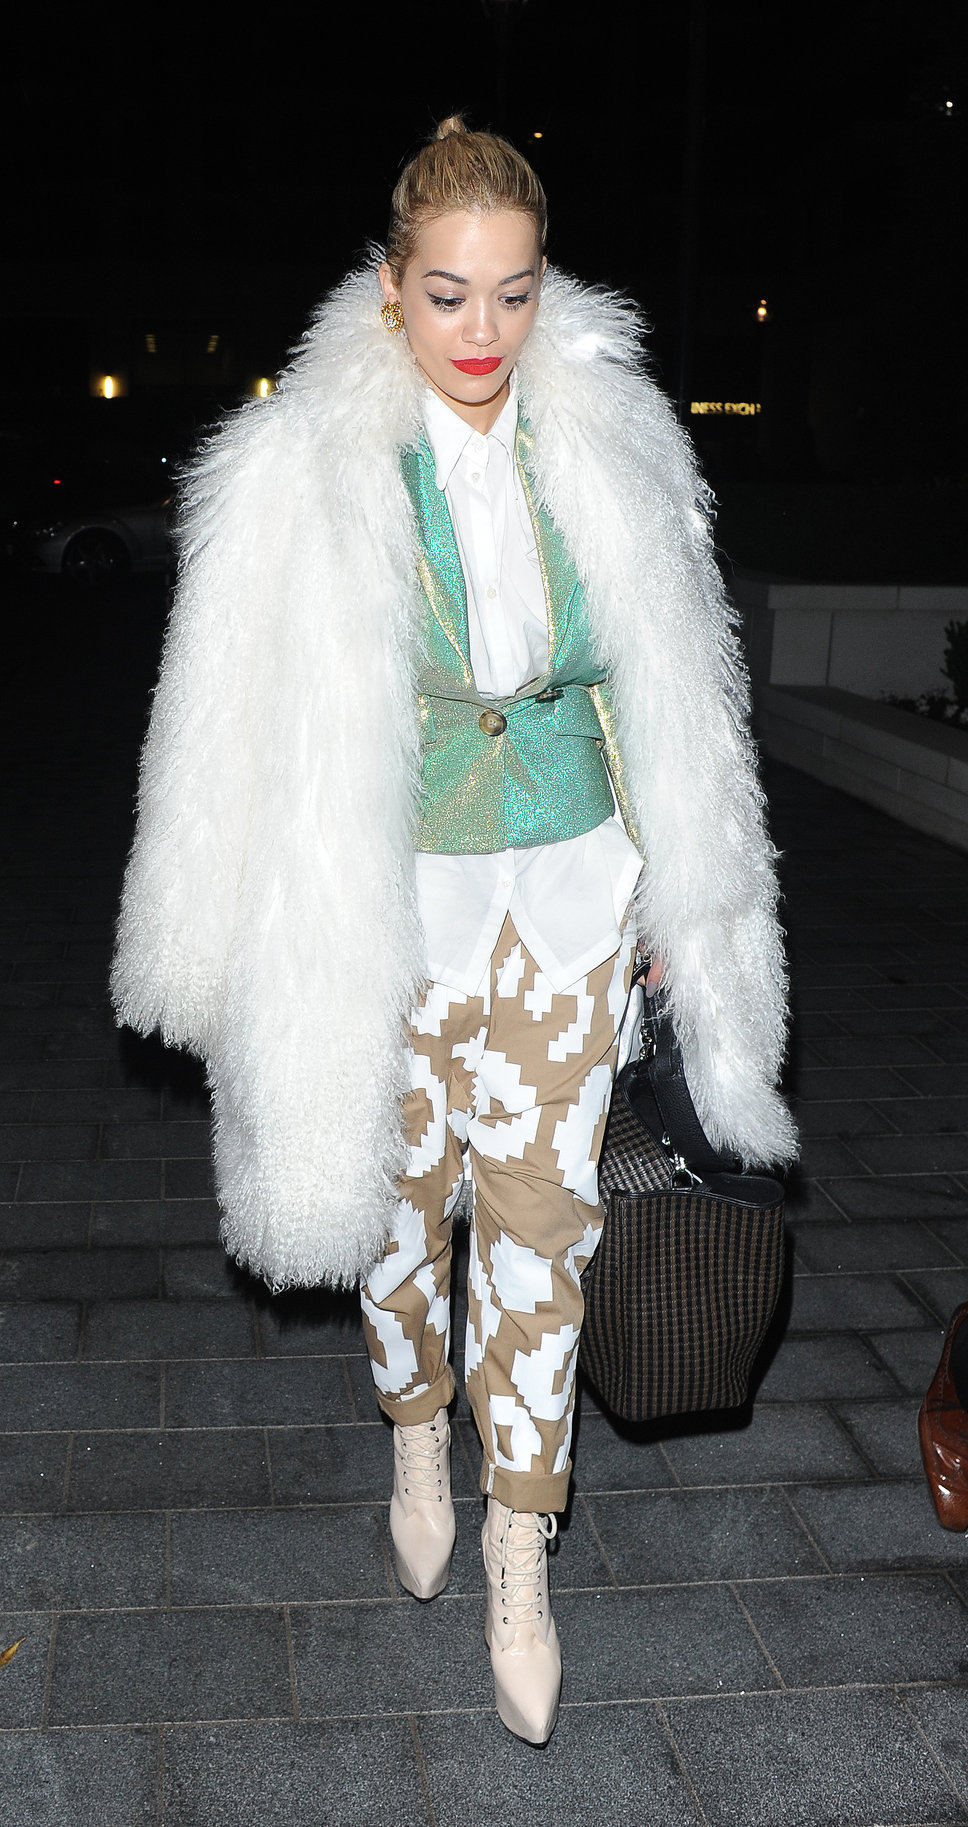 rita_ora_london_white_fur_jack